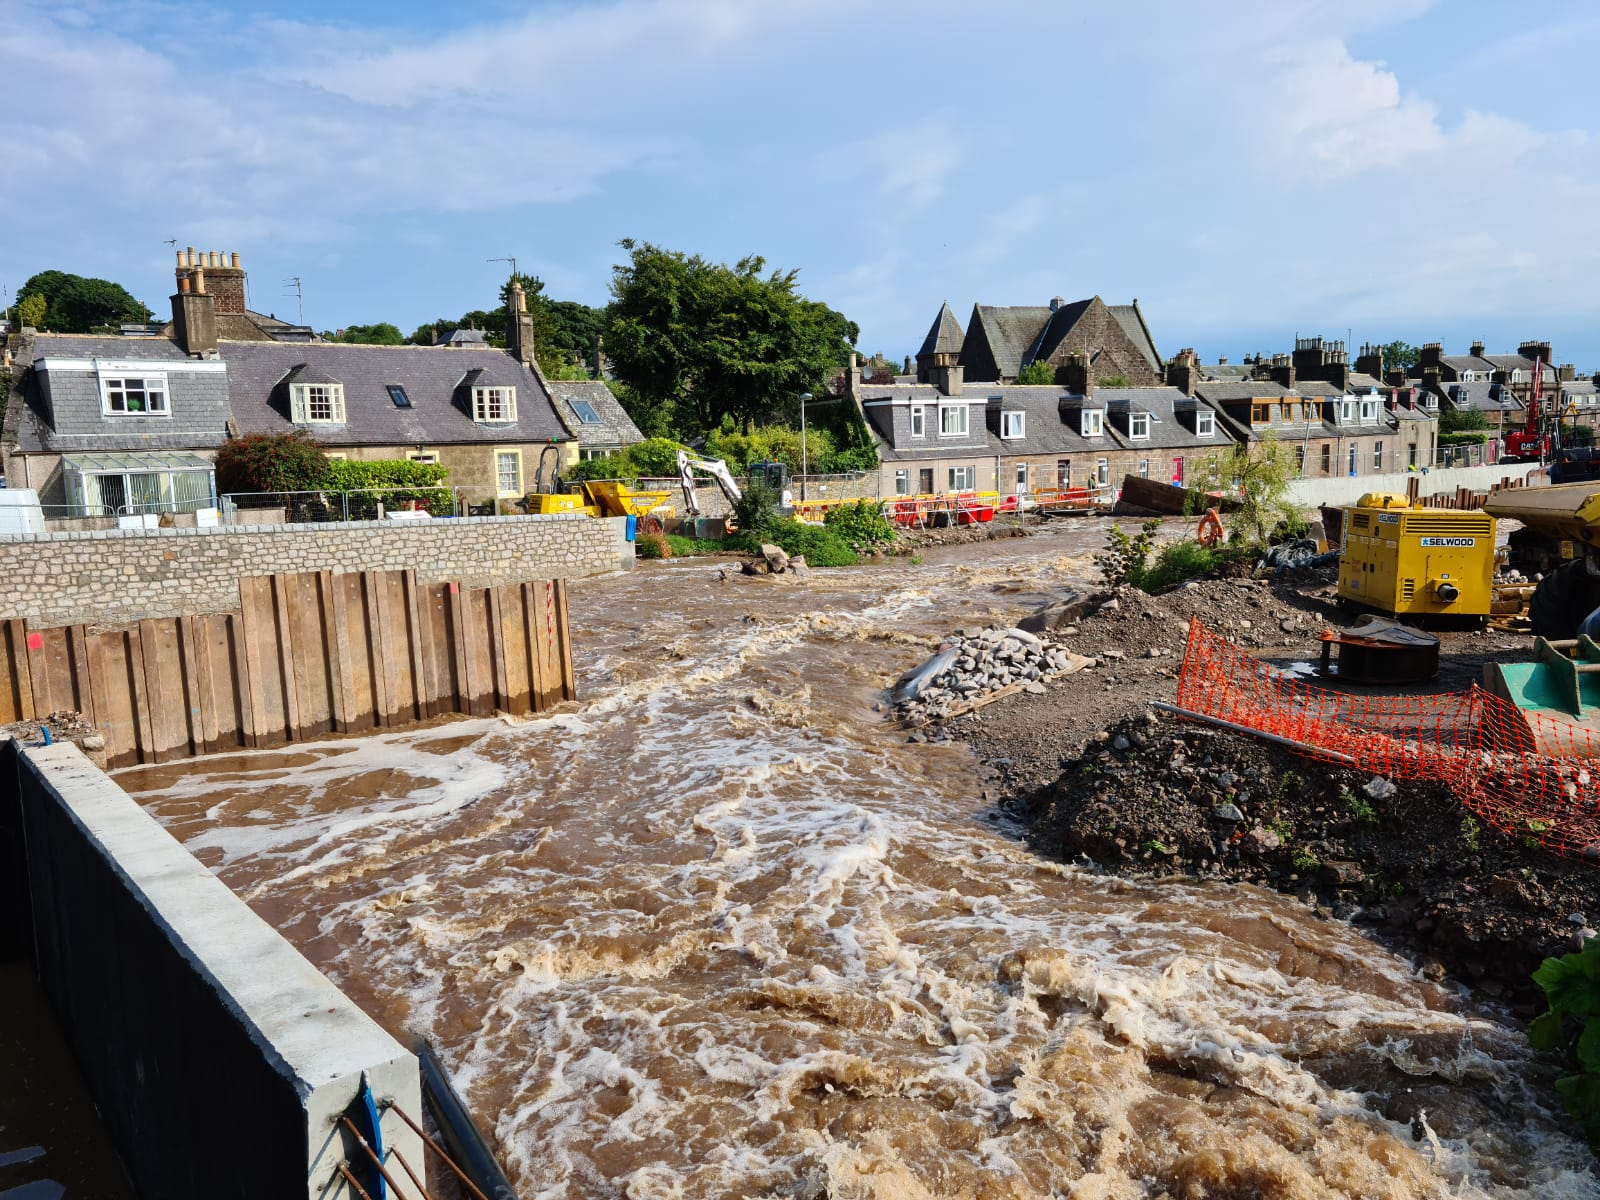 Flooding in Stonehaven. Picture by West Aberdeenshire and Kincardine MP Andrew Bowie